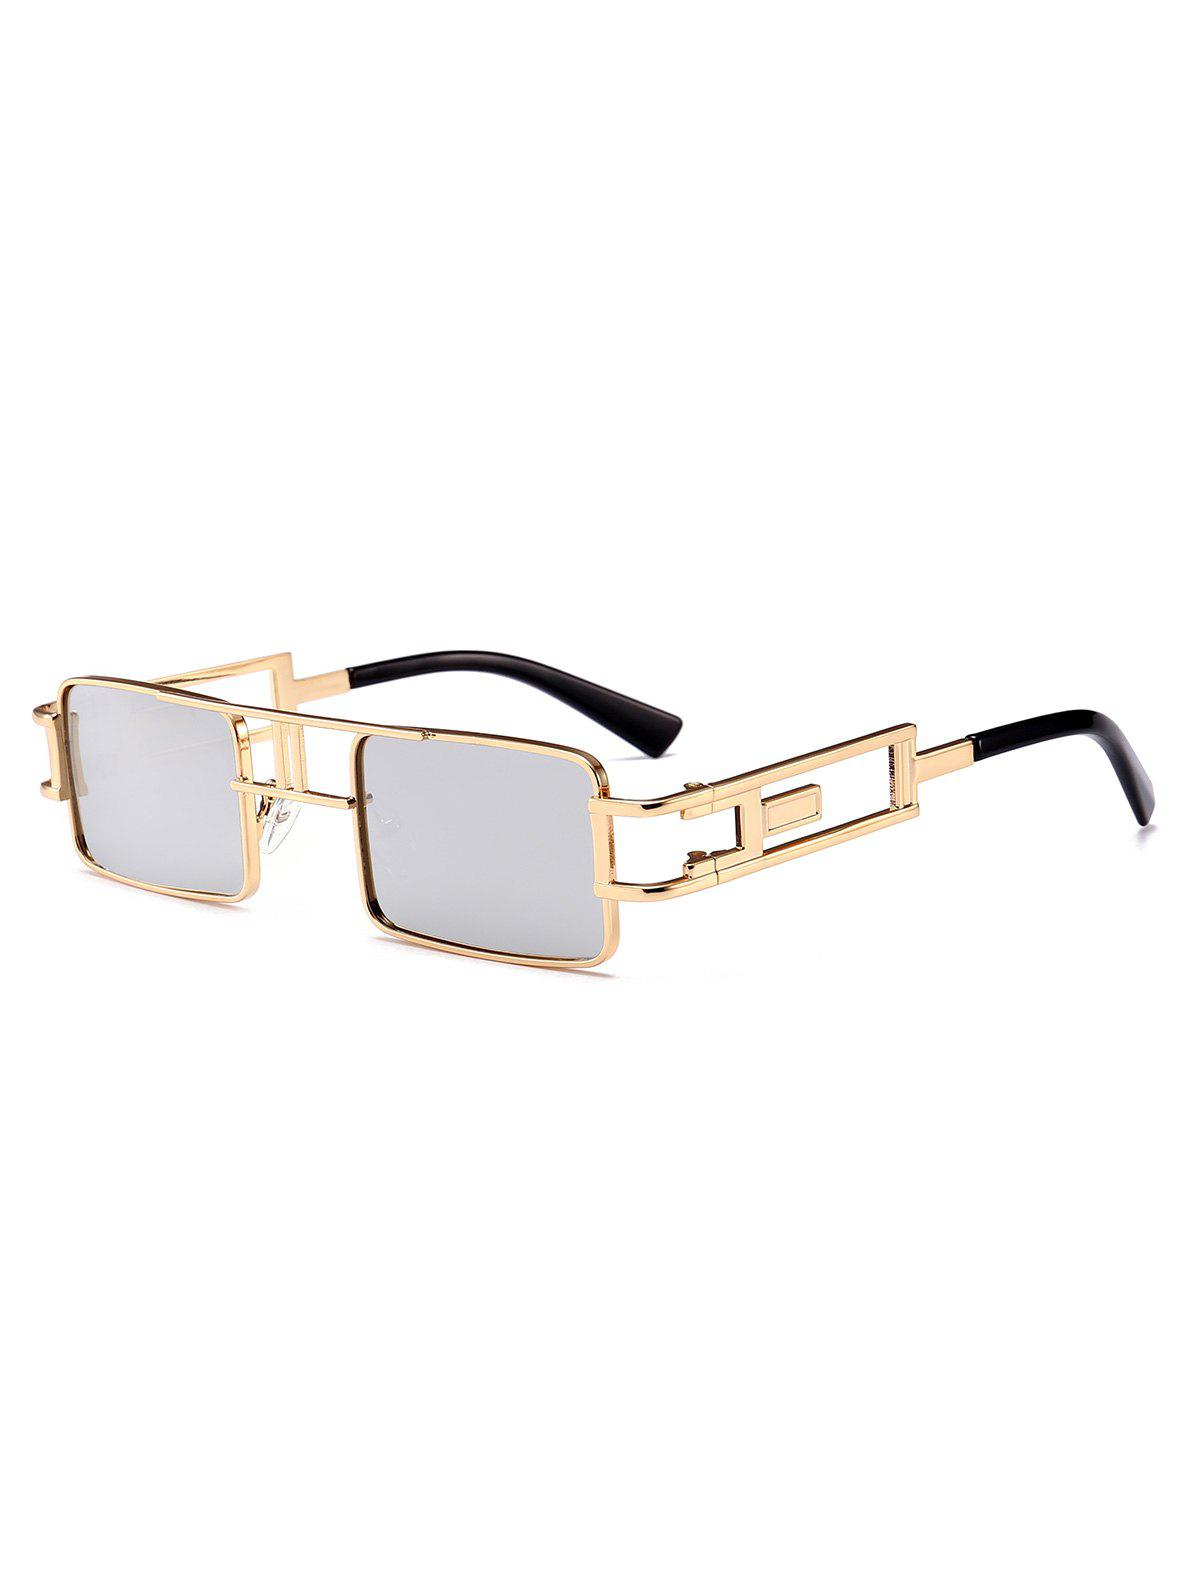 Unique Hollow Leg Punk Rectangle Sunglasses